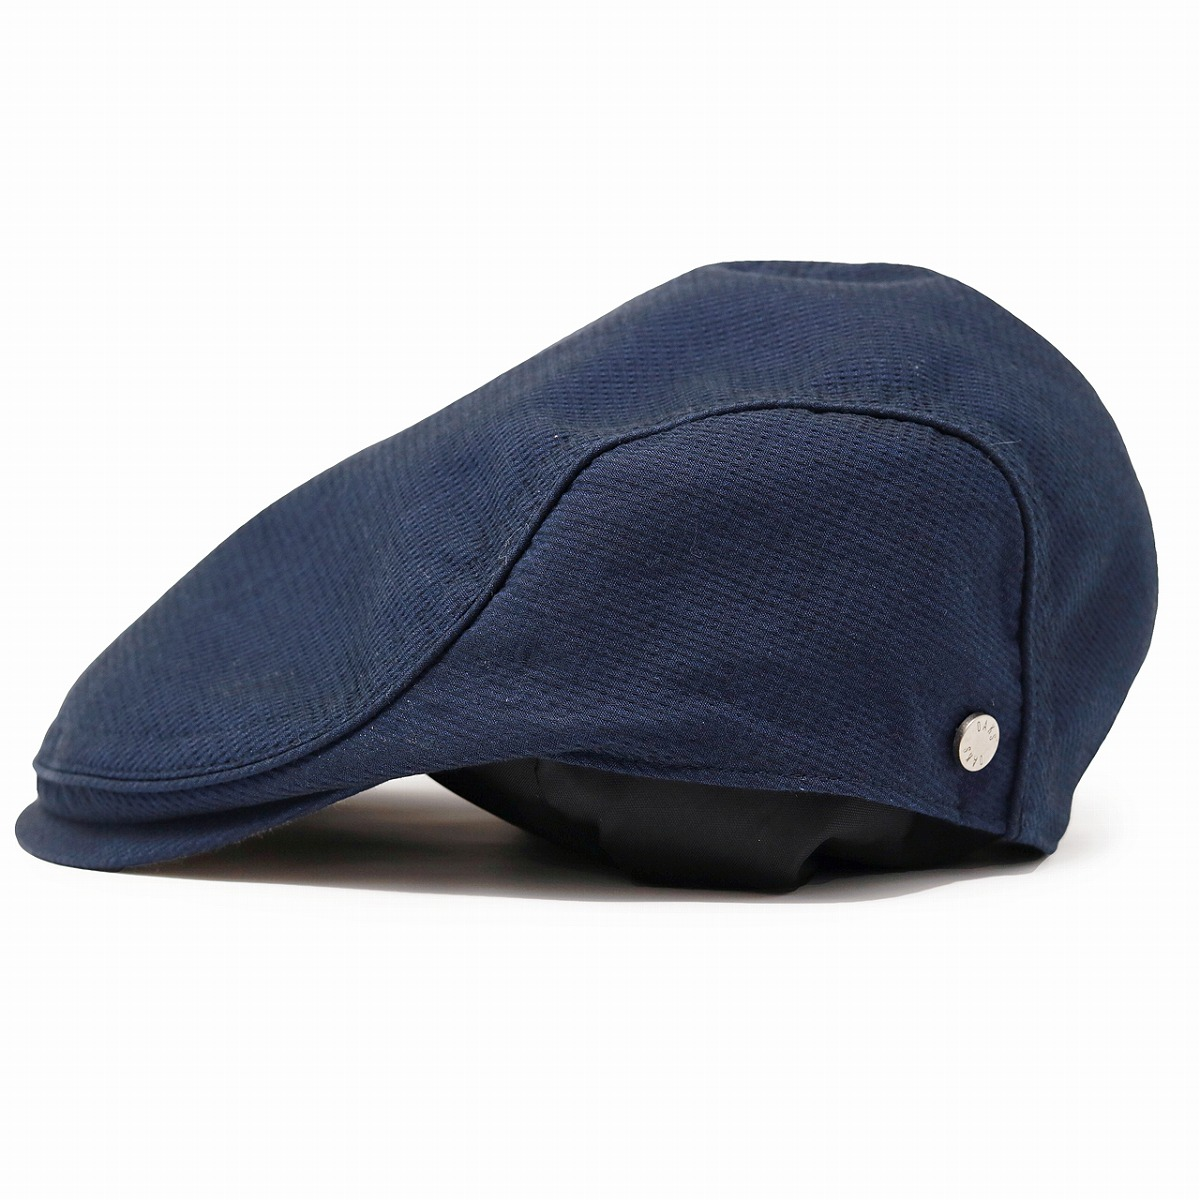 It is a gift present in product made in checked pattern DAKS hat cotton natural fiber Japan Shin pull lining house check / dark blue navy [ivy cap] Father's Day in the spring and summer unisex the daks hunting cap which there is the size S M L LL size th